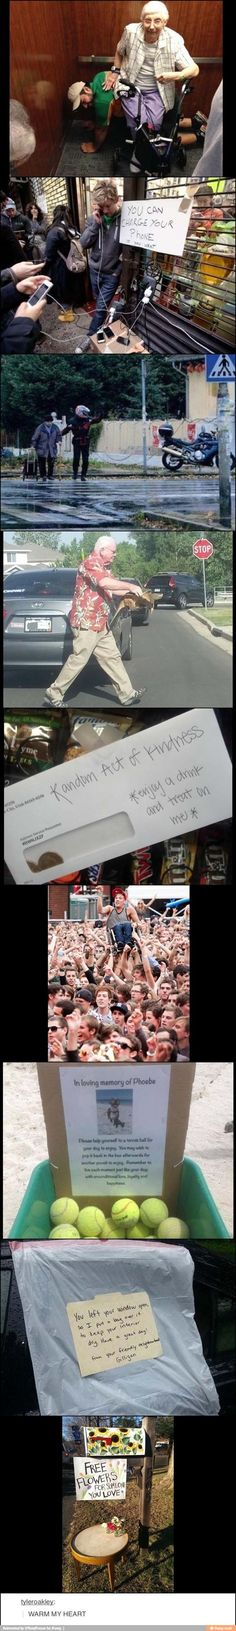 Some people are so inspirational, I wish so many more of us were like this! How sweet!